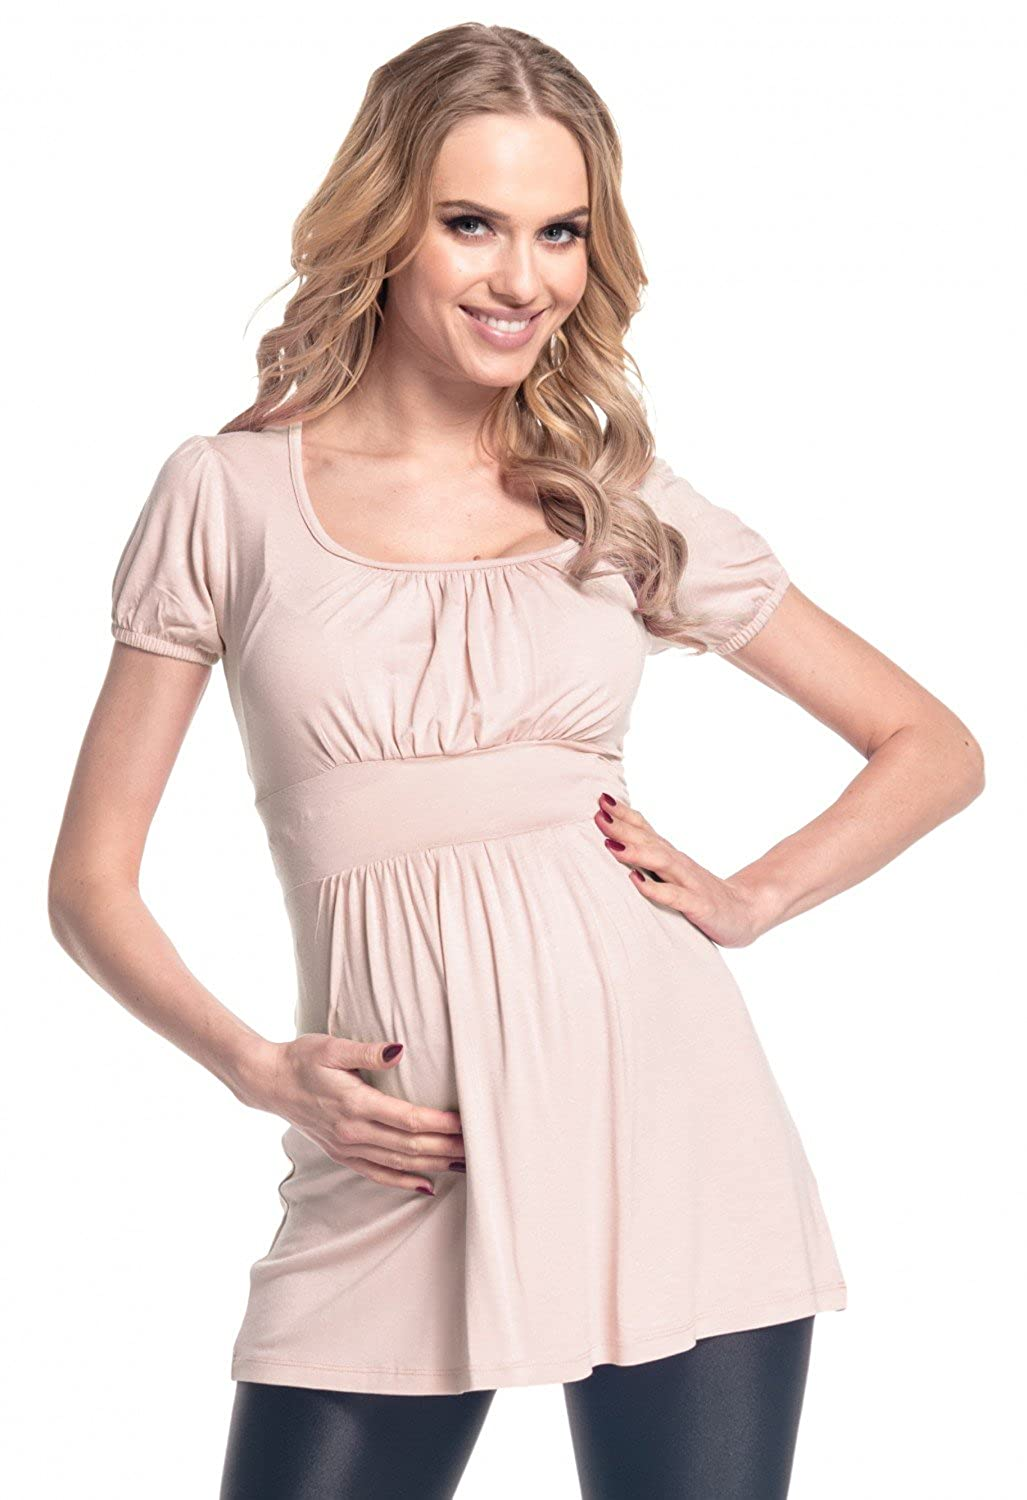 Happy Mama. Women's Maternity Stretch Short Sleeve Tunic Top Size US 8-16. 408p HMB_maternity tunic